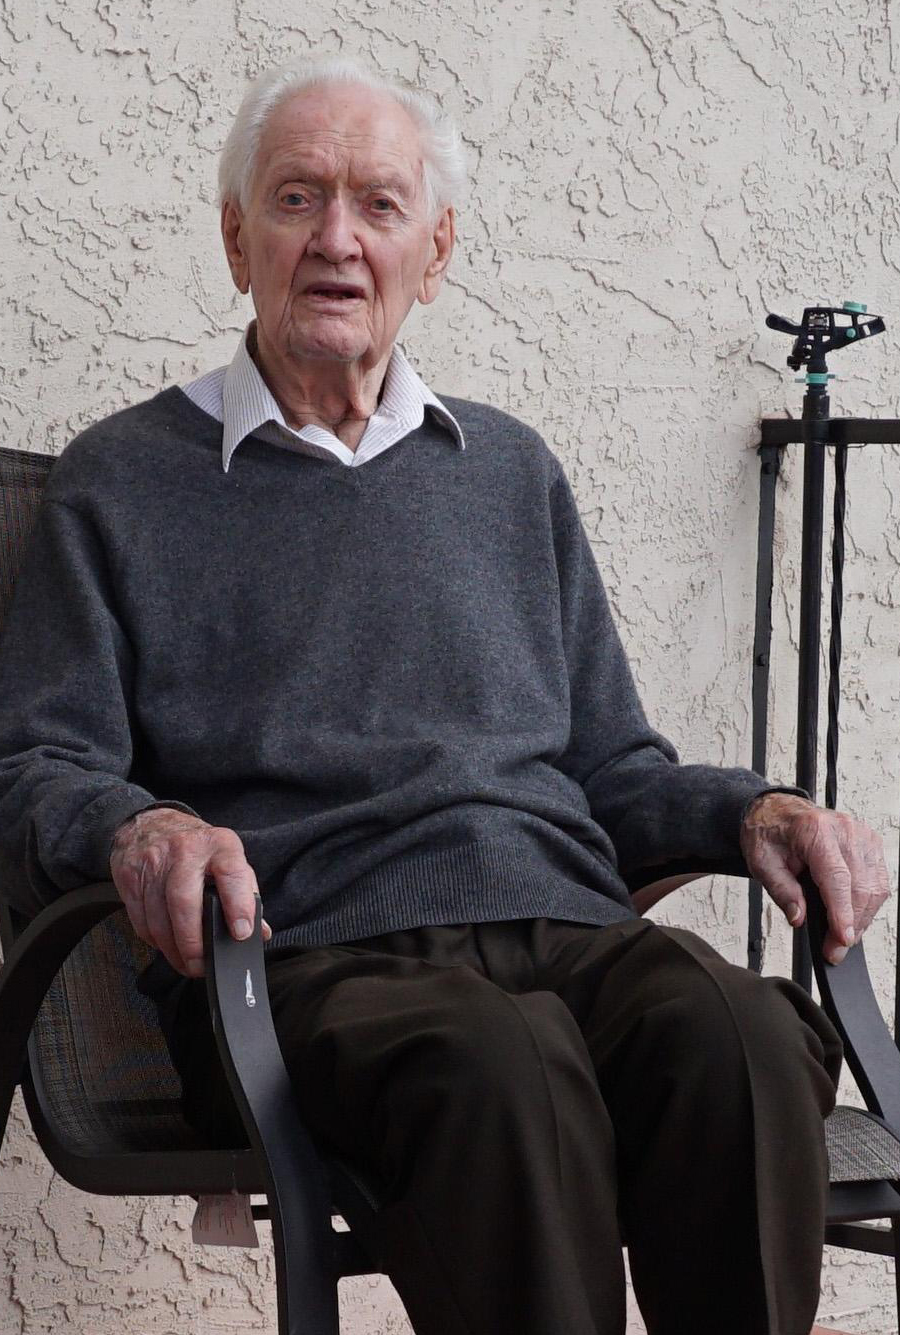 An elderly man is seated in a chair.